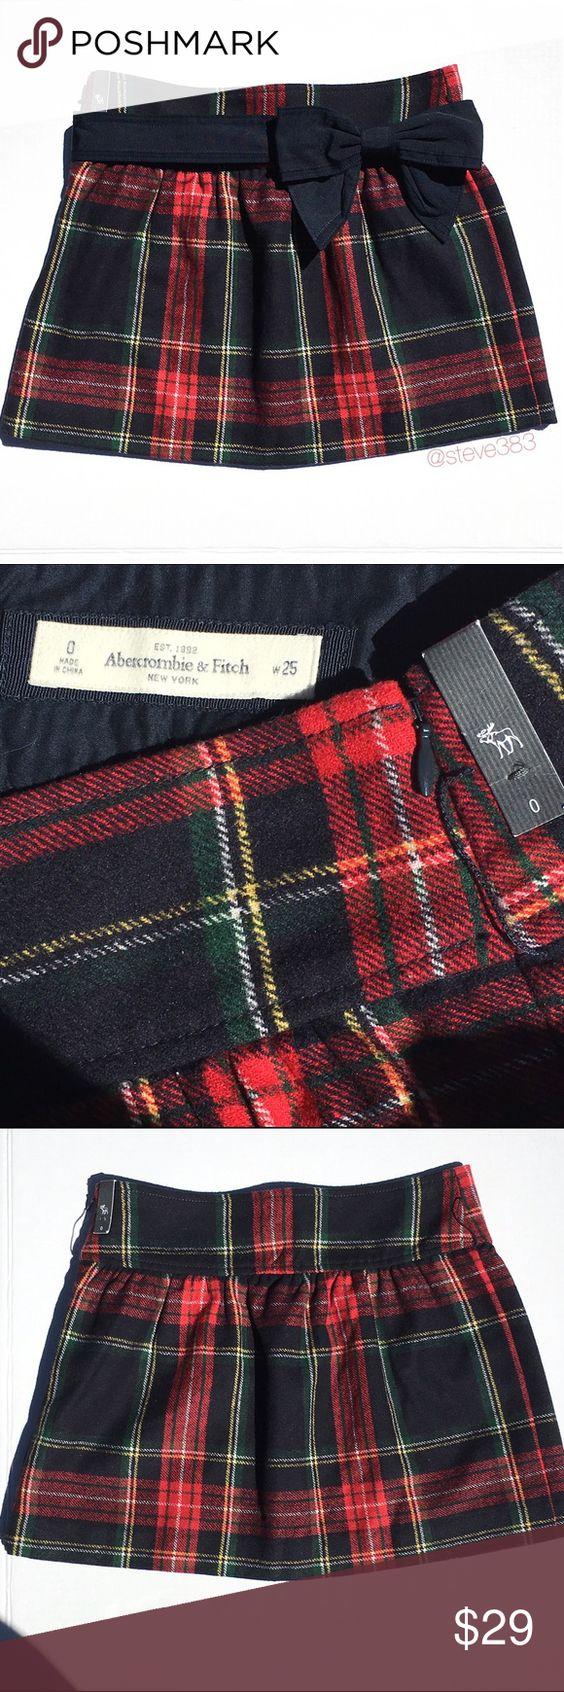 nwt A&F Abercrombie & Fitch wool plaid skirt This skirt is perfect for fall and the holidays.... And great for schoolgirl Halloween costume! 🎃  The wool blend classic plaid skirt features stripes of red, navy, Kelly green, as well as a little yellow and ivory. Hidden side zipper, thread belt loops (easily removed if desired), embroidered moose logo.   Perfectly cosy with ivory sweater and leg warmers or uggs, dressy paired with Mary Janes and a blouse or casual cool with converse and a T…